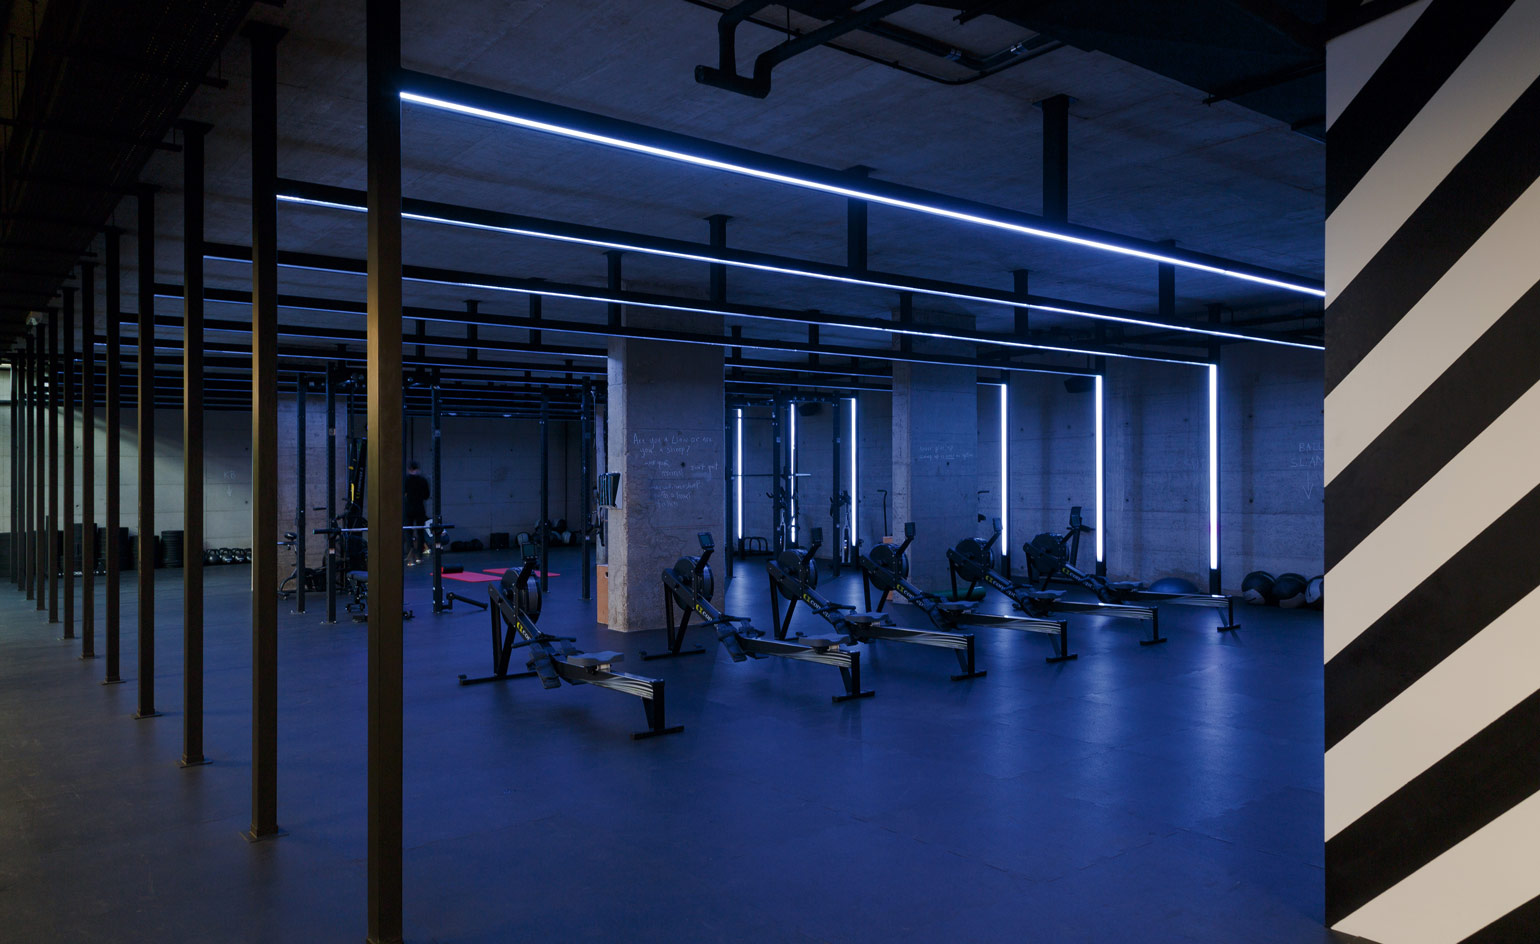 The best gyms around the world 2018 wallpaper*